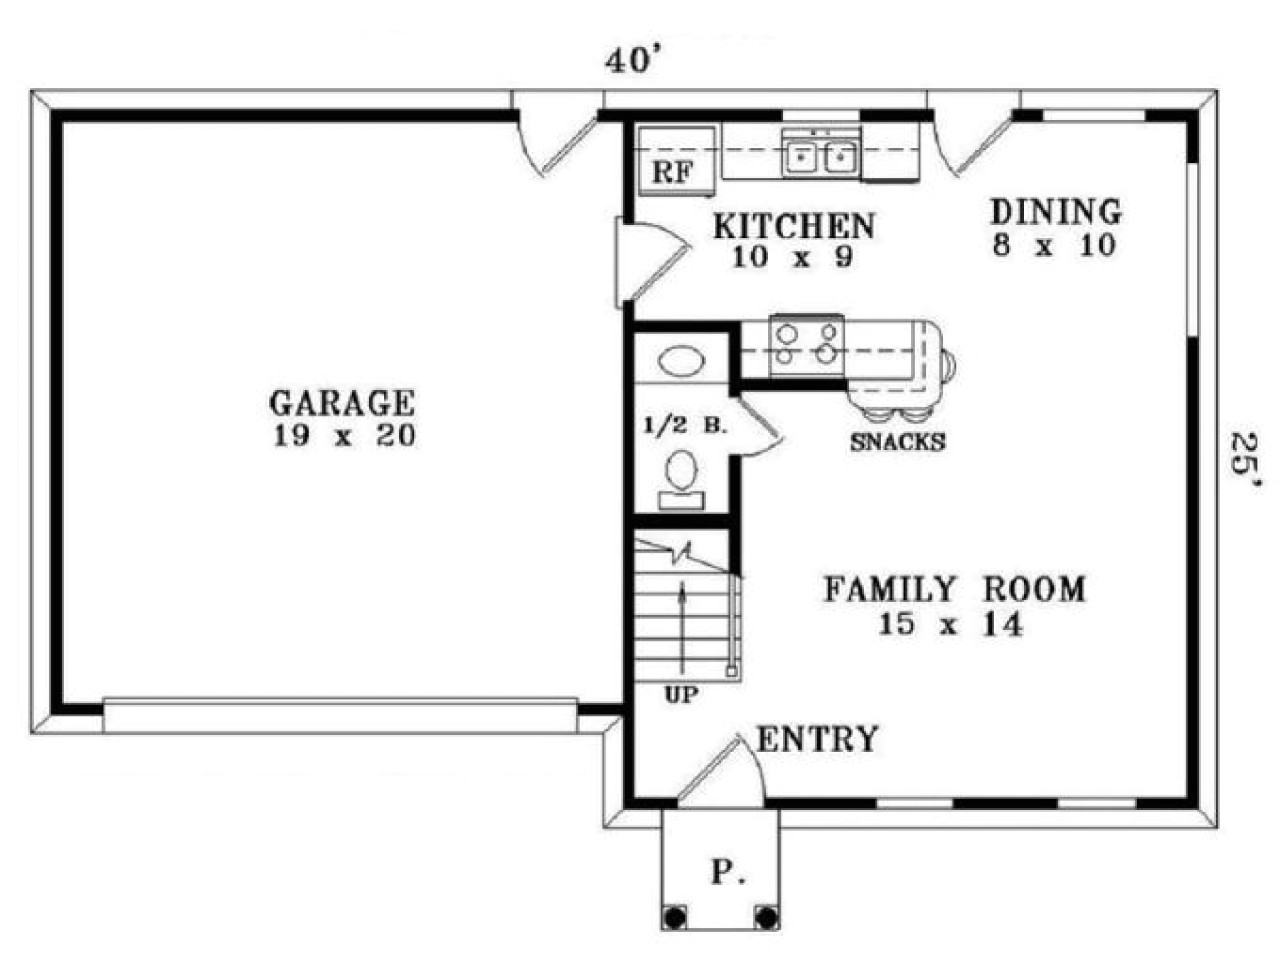 8aff69def5df436d simple small house floor plans 2 bedrooms simple small house floor plans